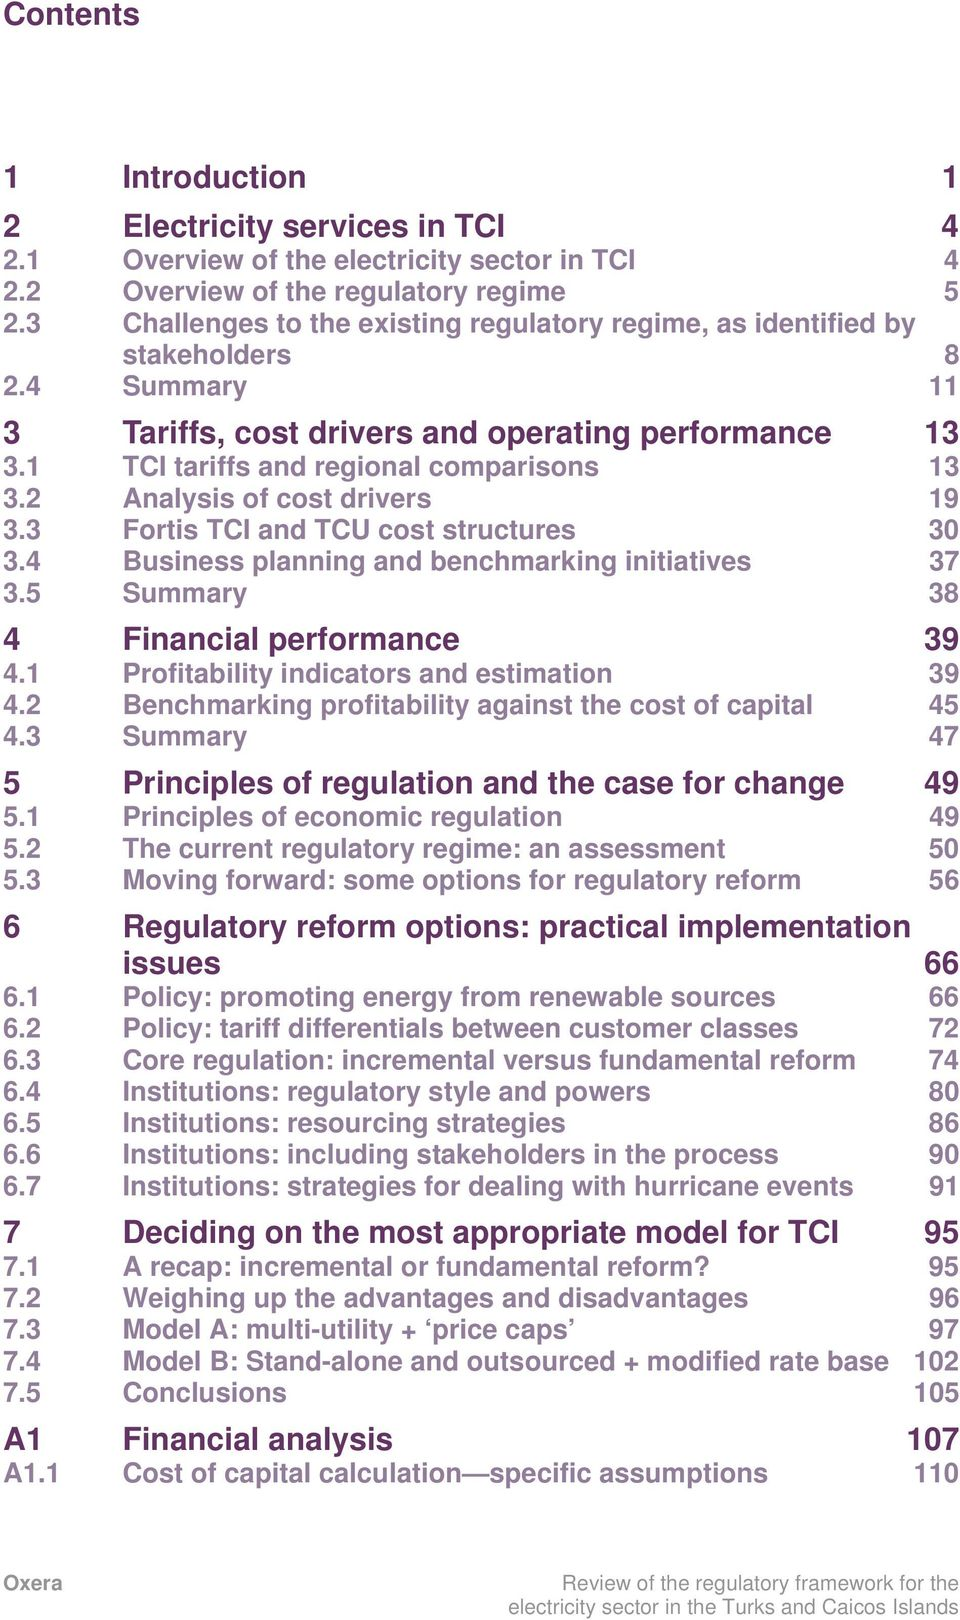 2 Analysis of cost drivers 19 3.3 Fortis TCI and TCU cost structures 30 3.4 Business planning and benchmarking initiatives 37 3.5 Summary 38 4 Financial performance 39 4.